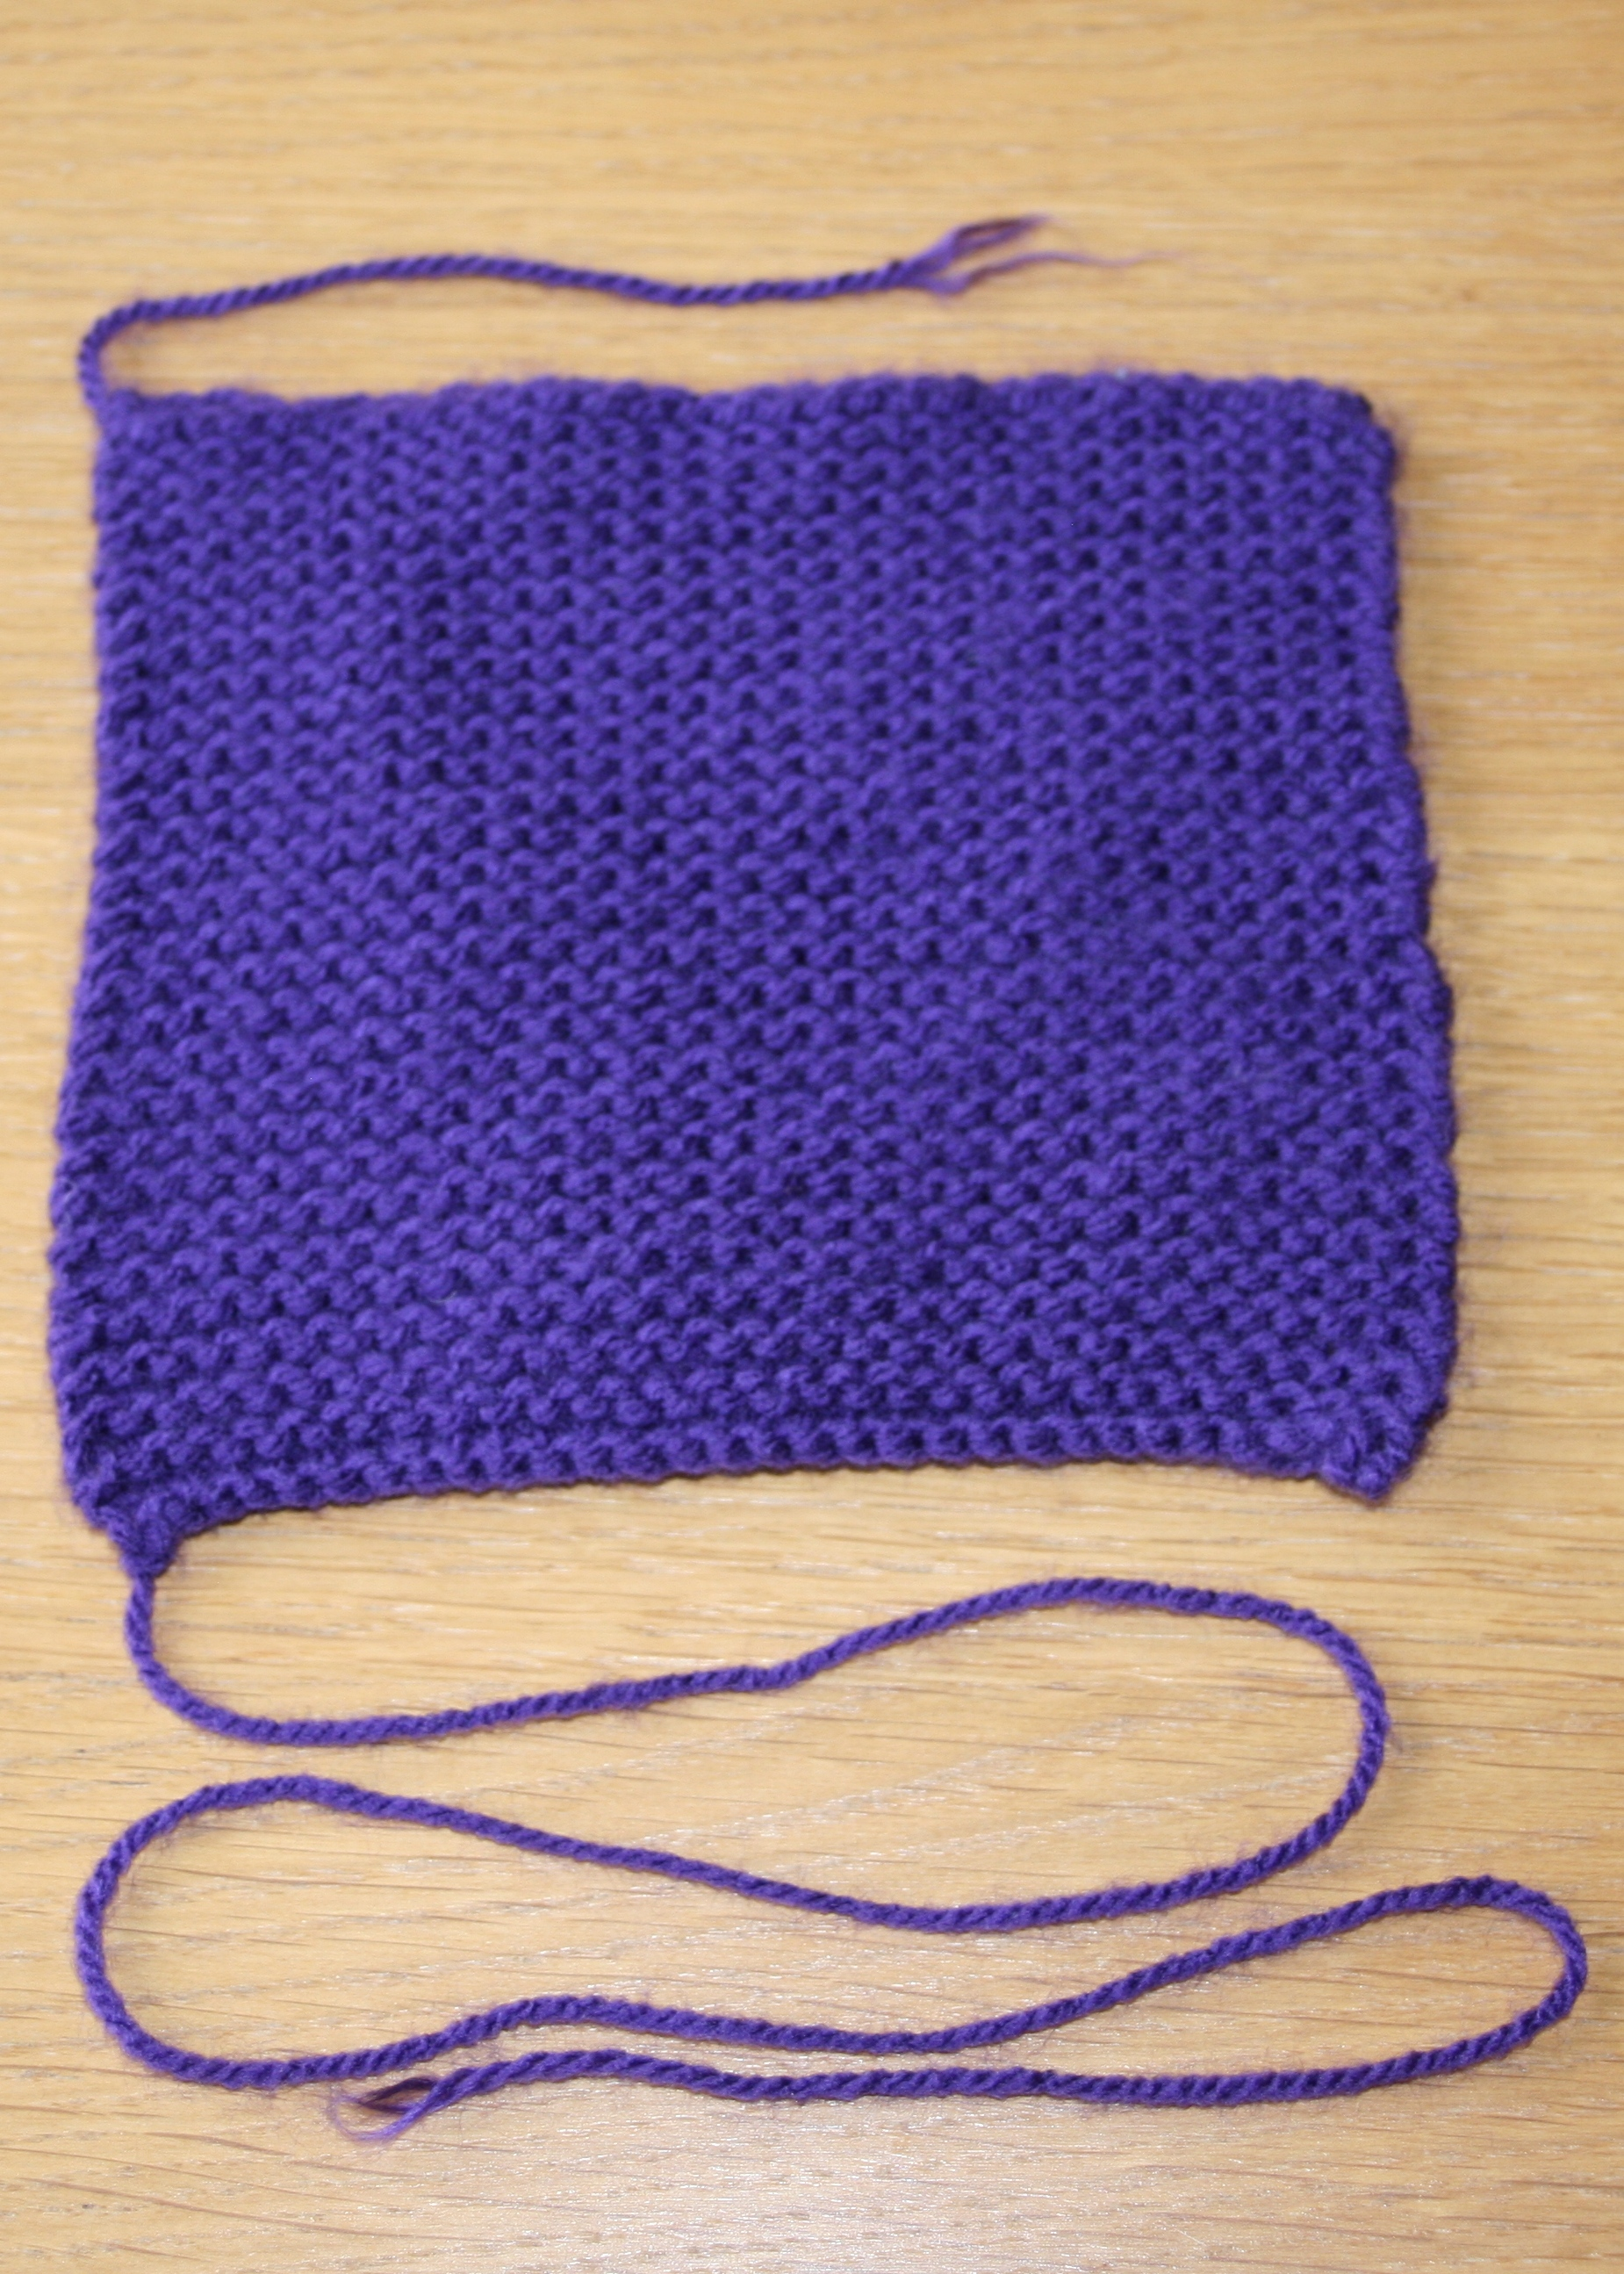 Knitting Blankets For Charity : Projects